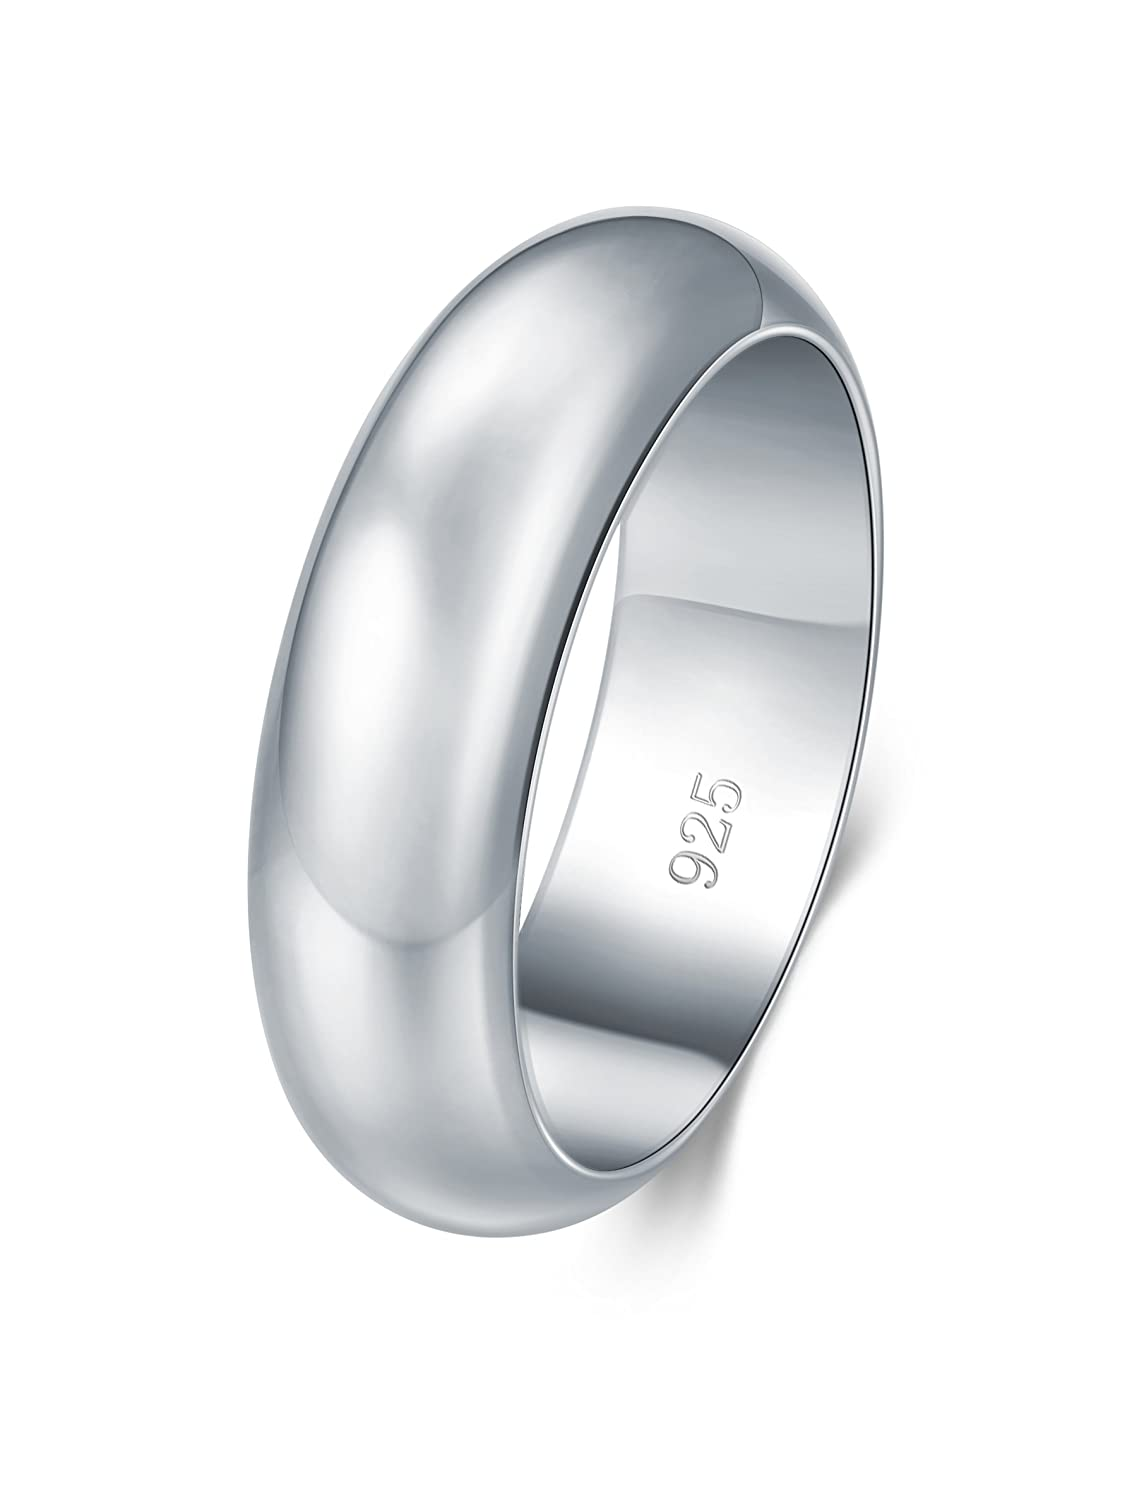 BORUO 925 Sterling Silver Ring High Polish Plain Dome Tarnish Resistant Comfort Fit Wedding Band 6mm Ring BRC Creative Corp.